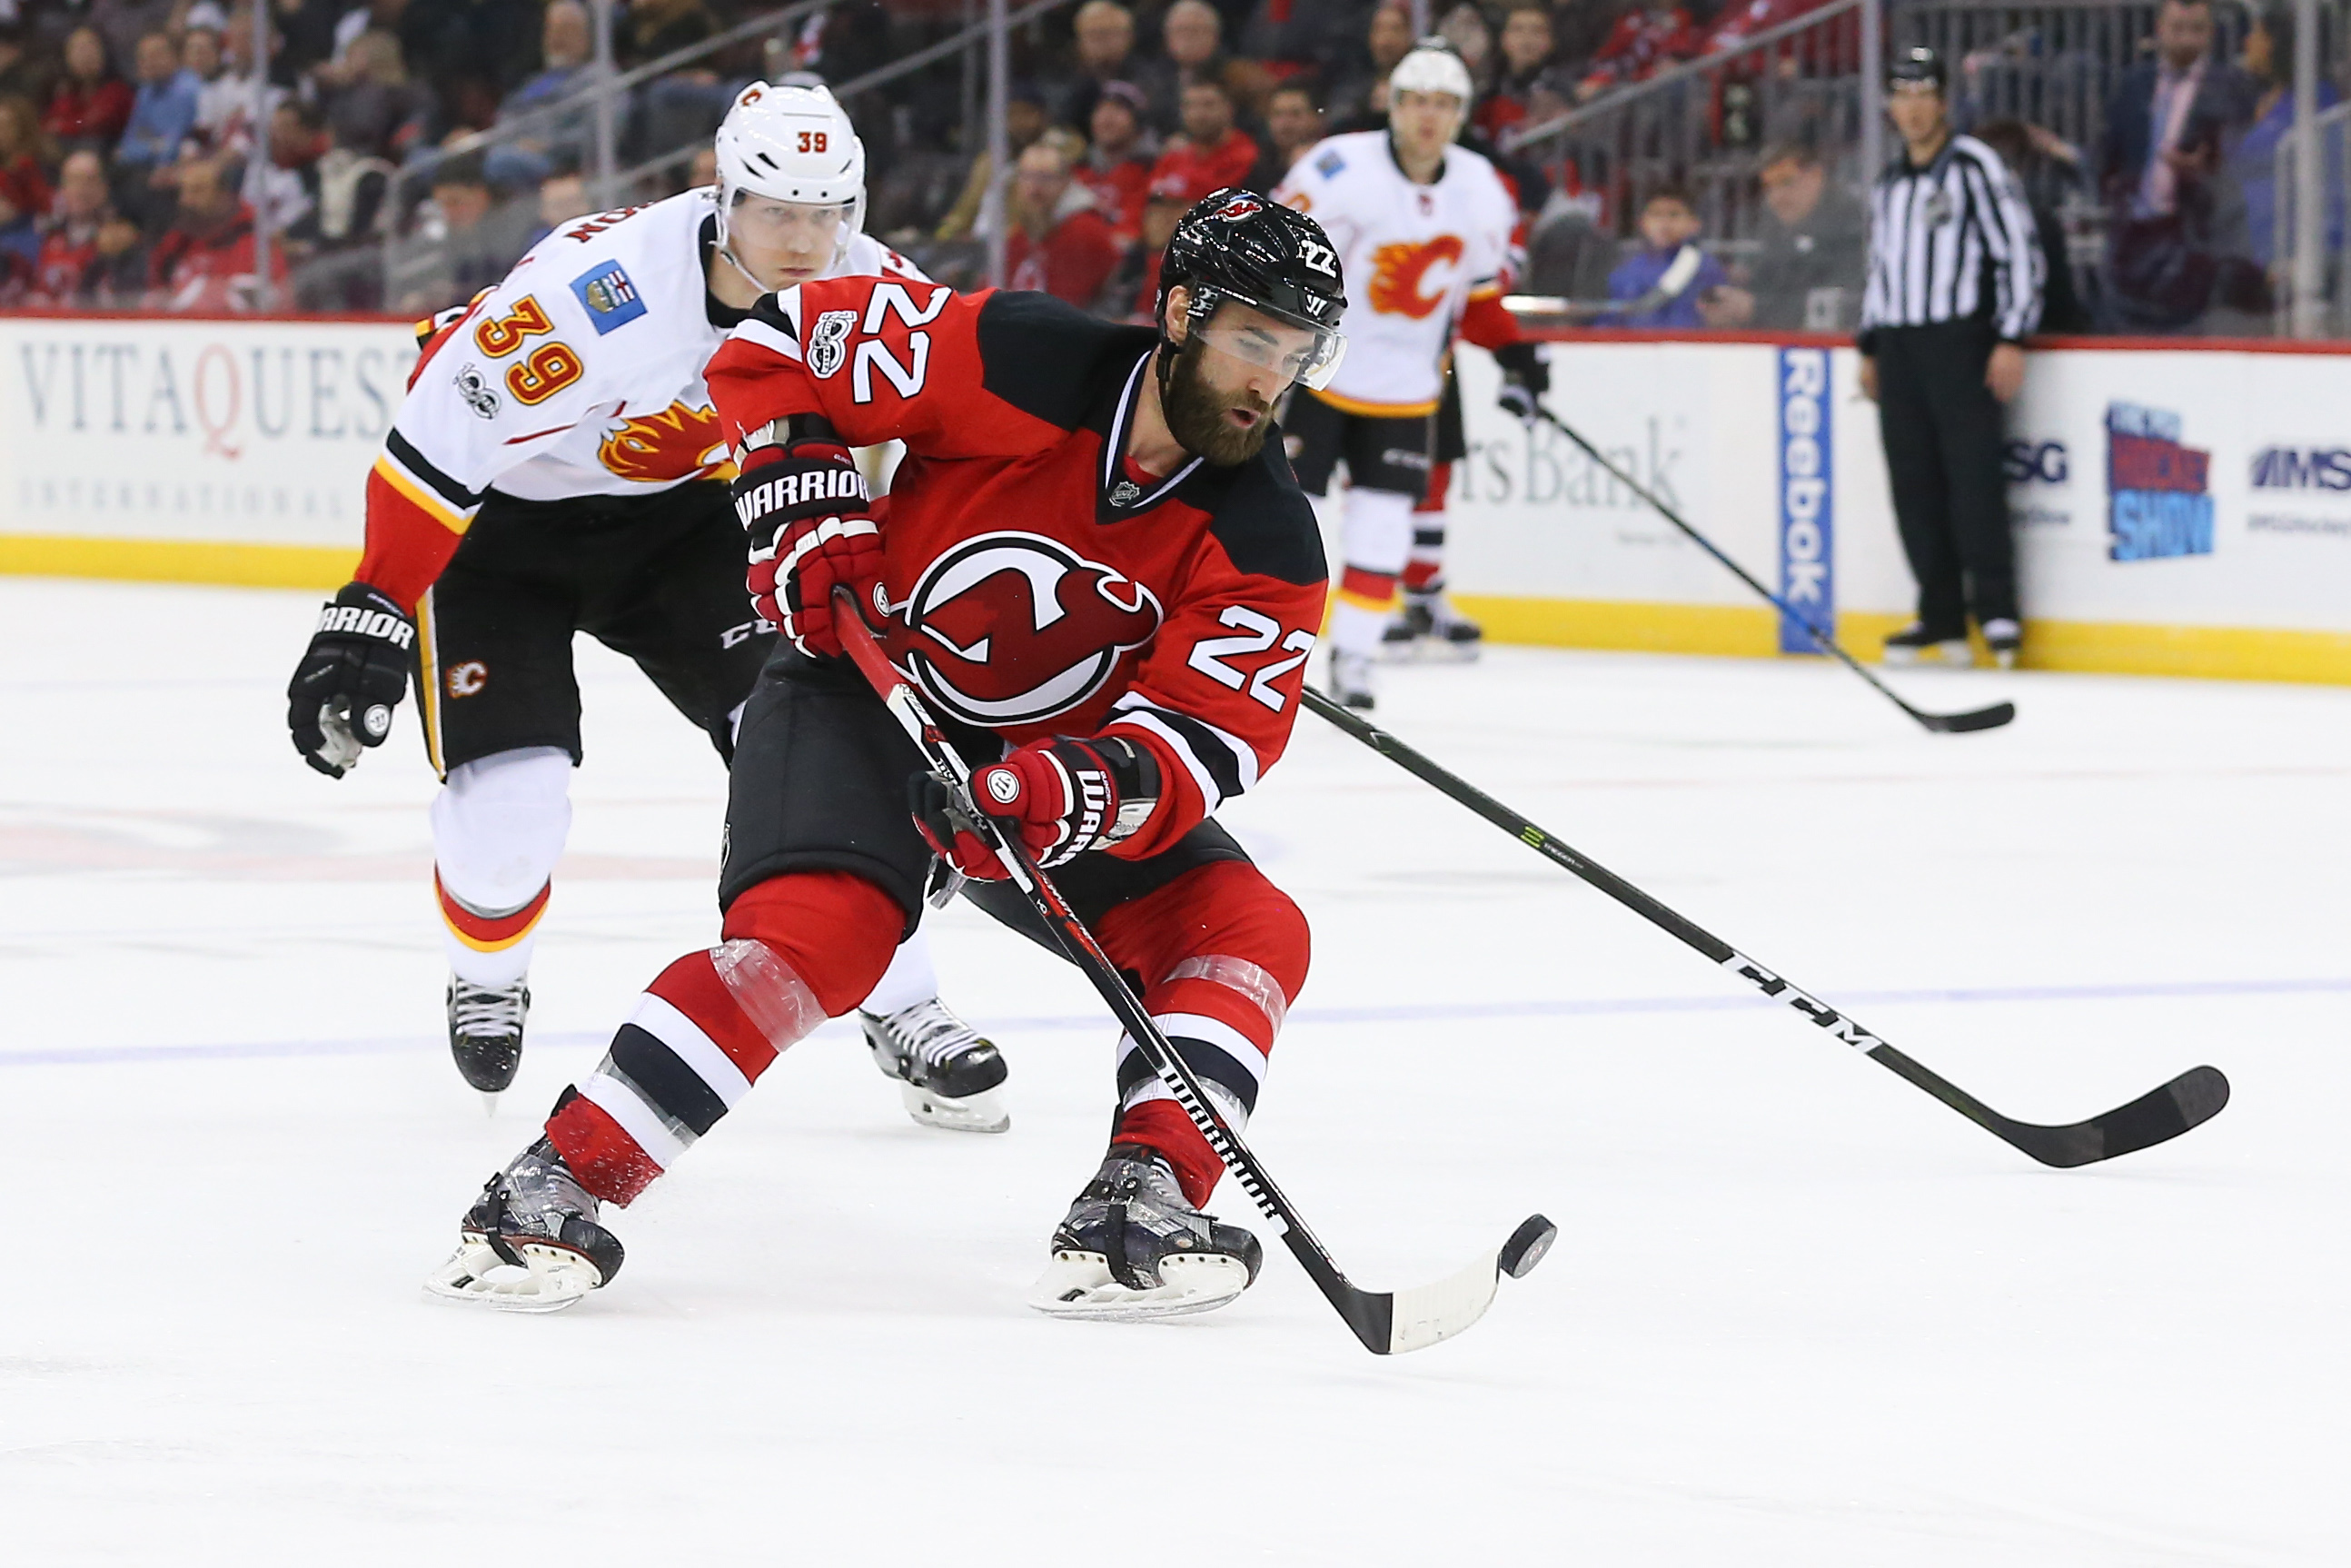 9856396-nhl-calgary-flames-at-new-jersey-devils